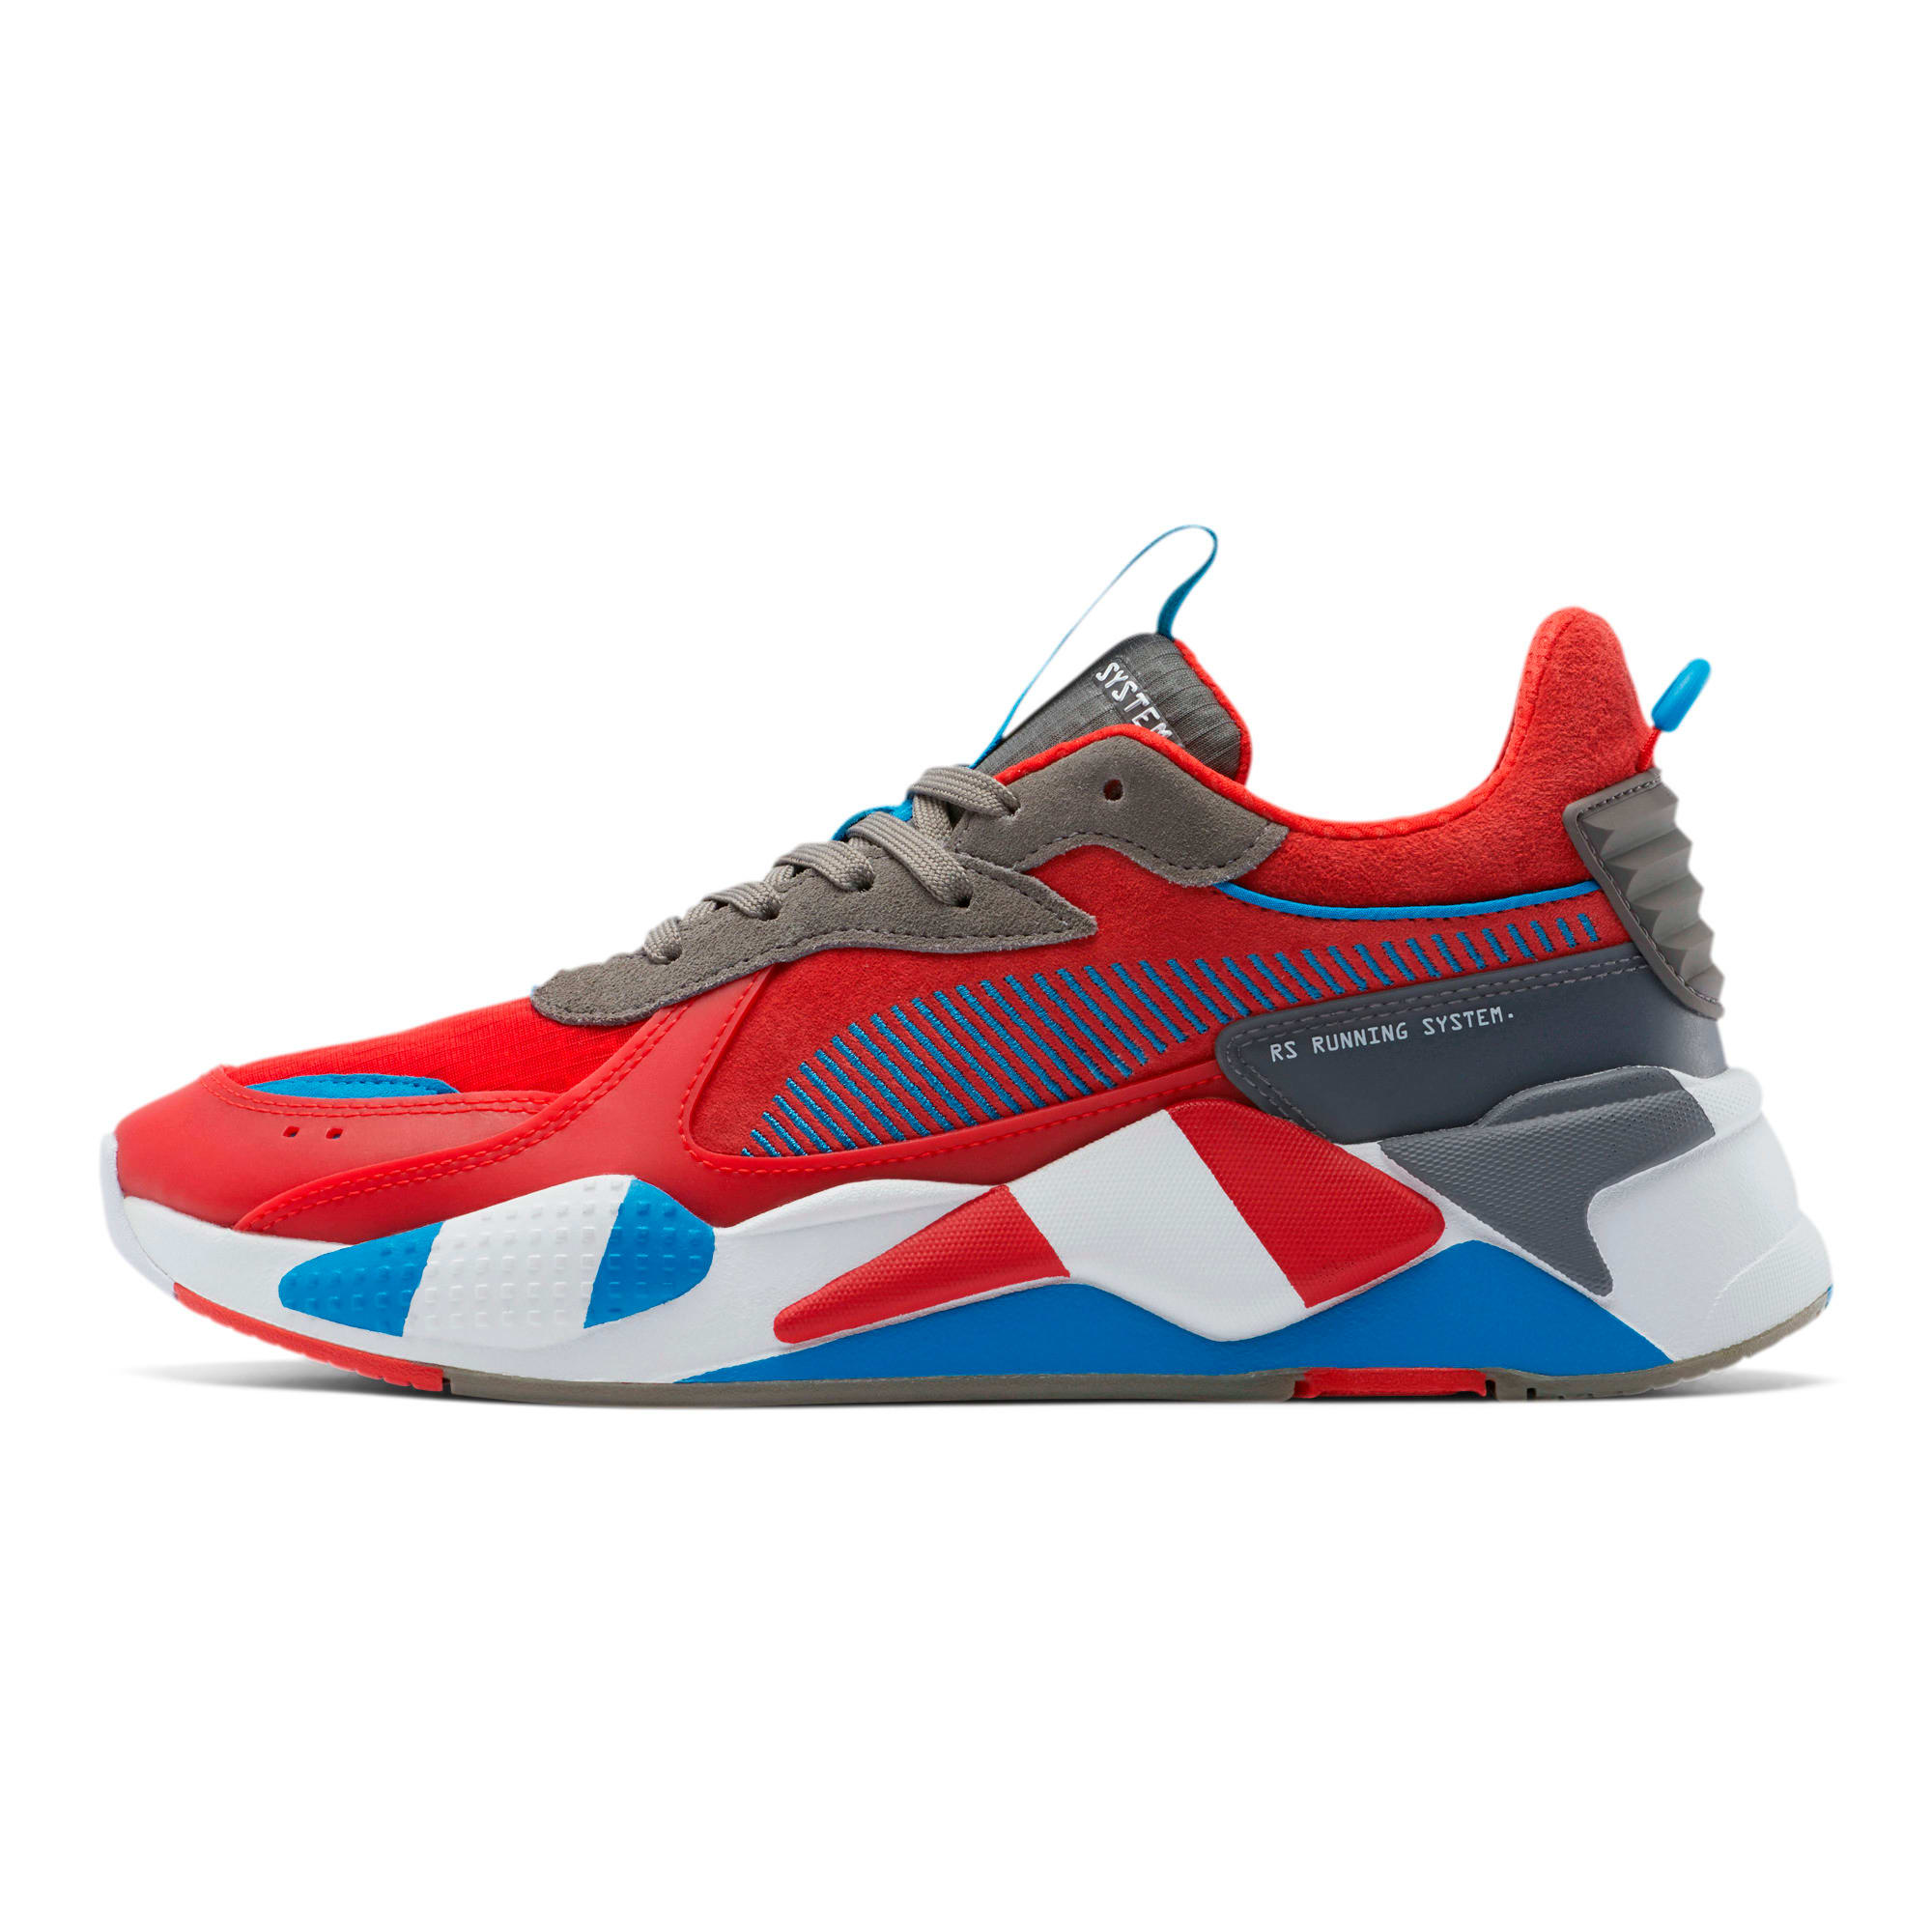 Thumbnail 1 of RS-X Retro Sneakers, Red-Steel Gray-Indigo, medium